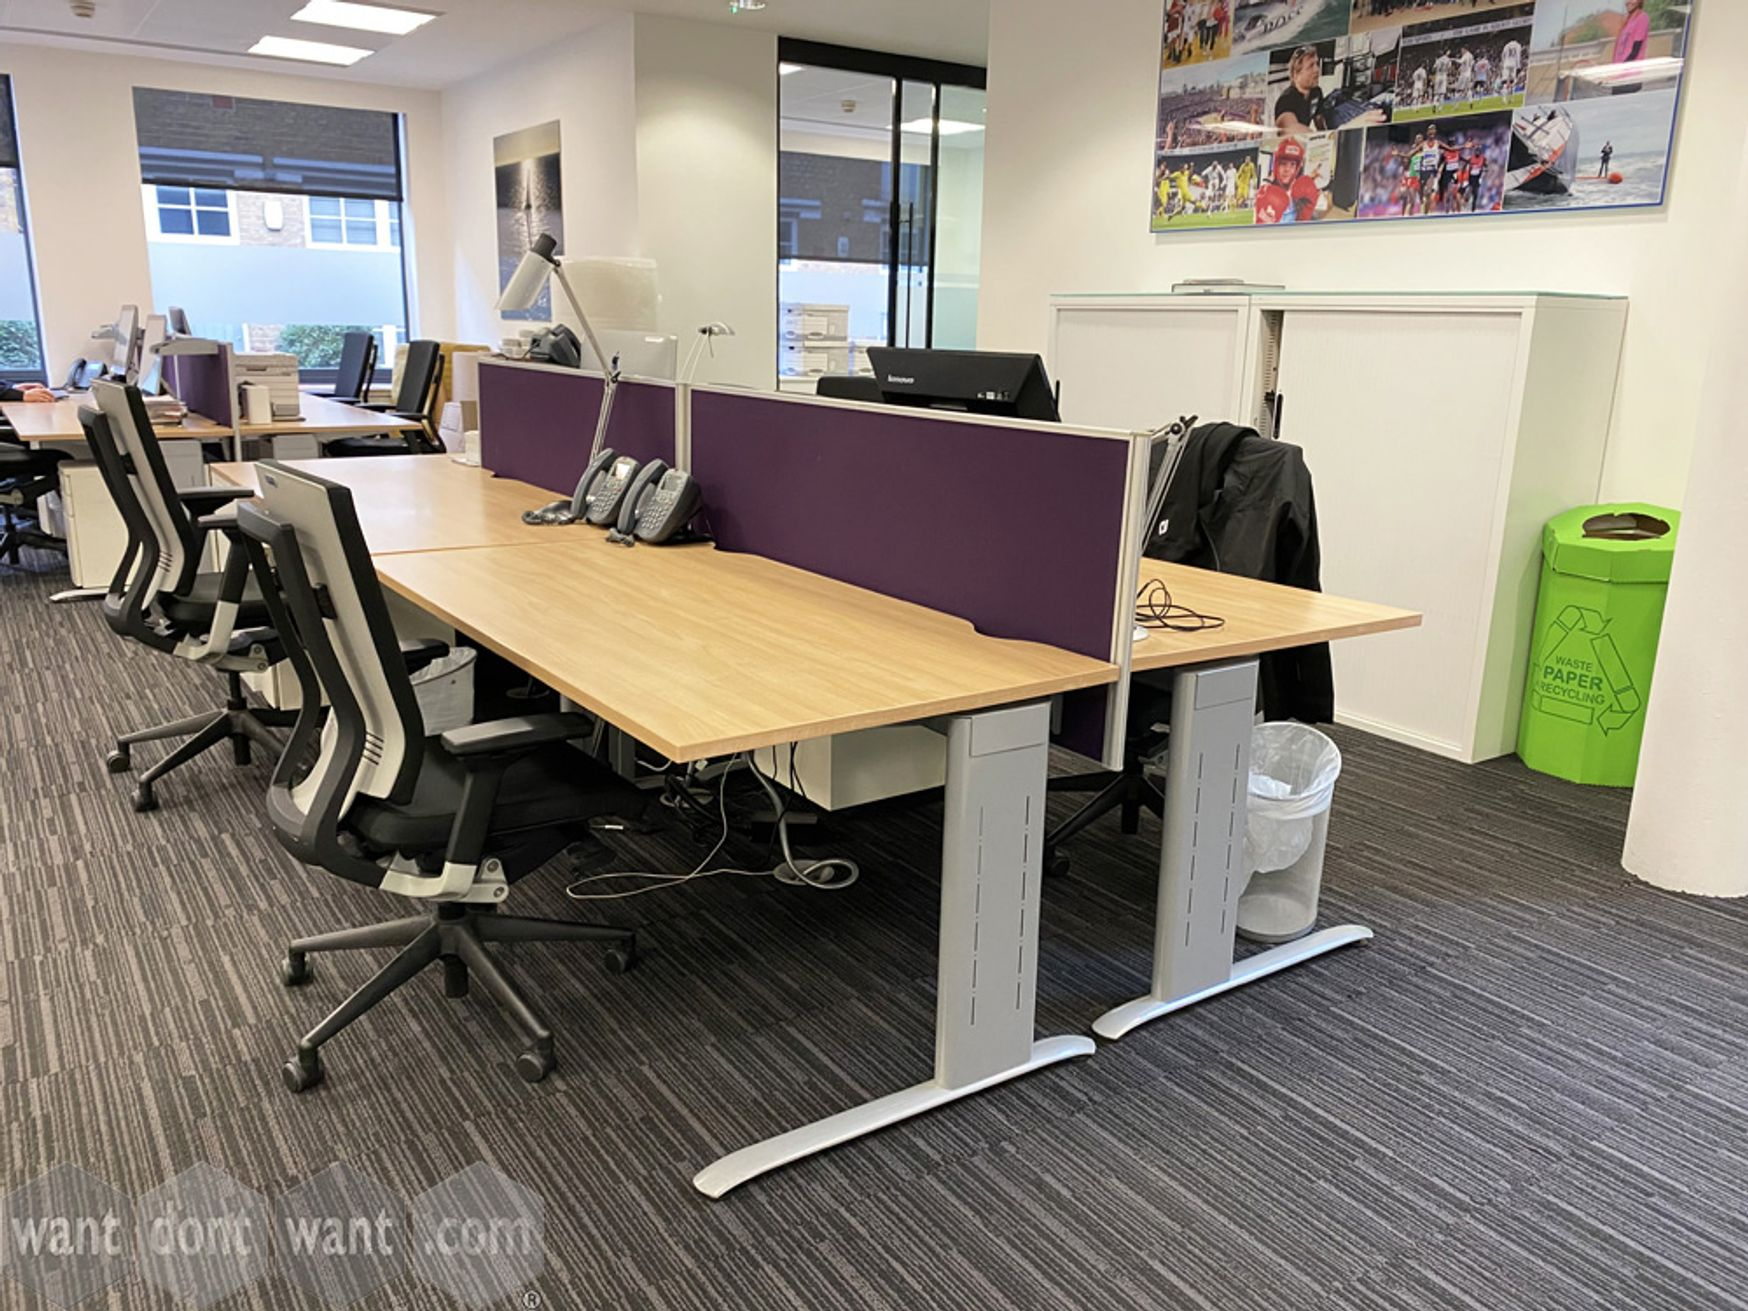 3 x Modern 4-person bench desks with dividing purple fabric screens.